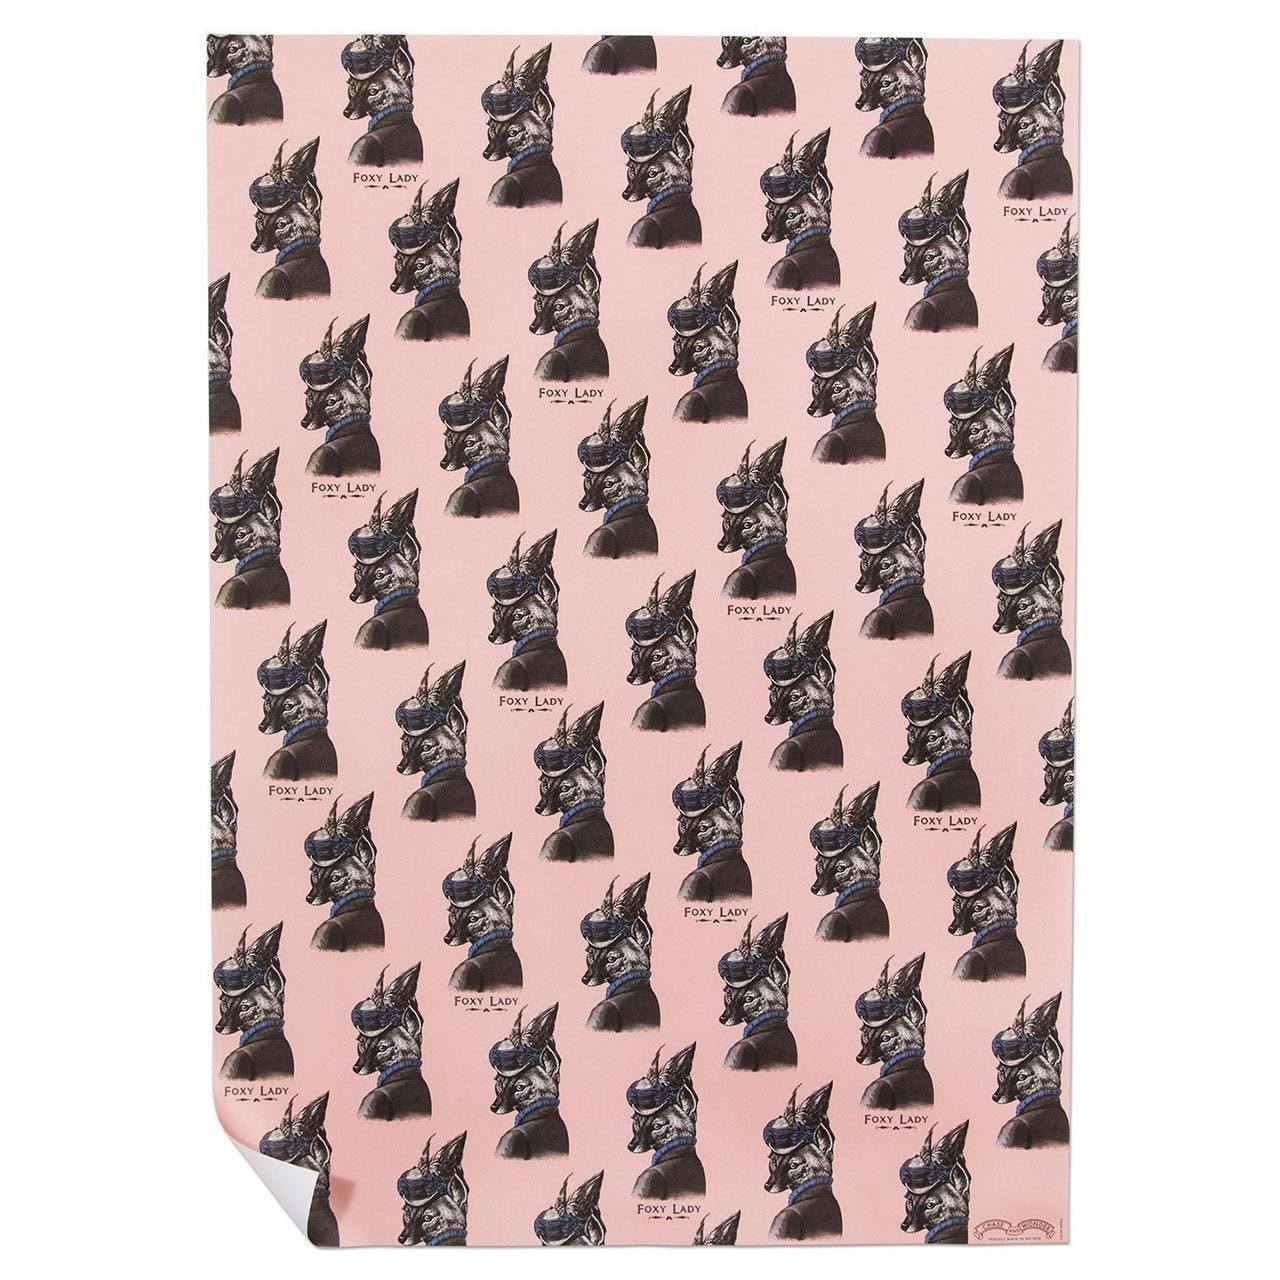 Foxy Lady Wrapping Paper - Chase and Wonder - Proudly Made in Britain